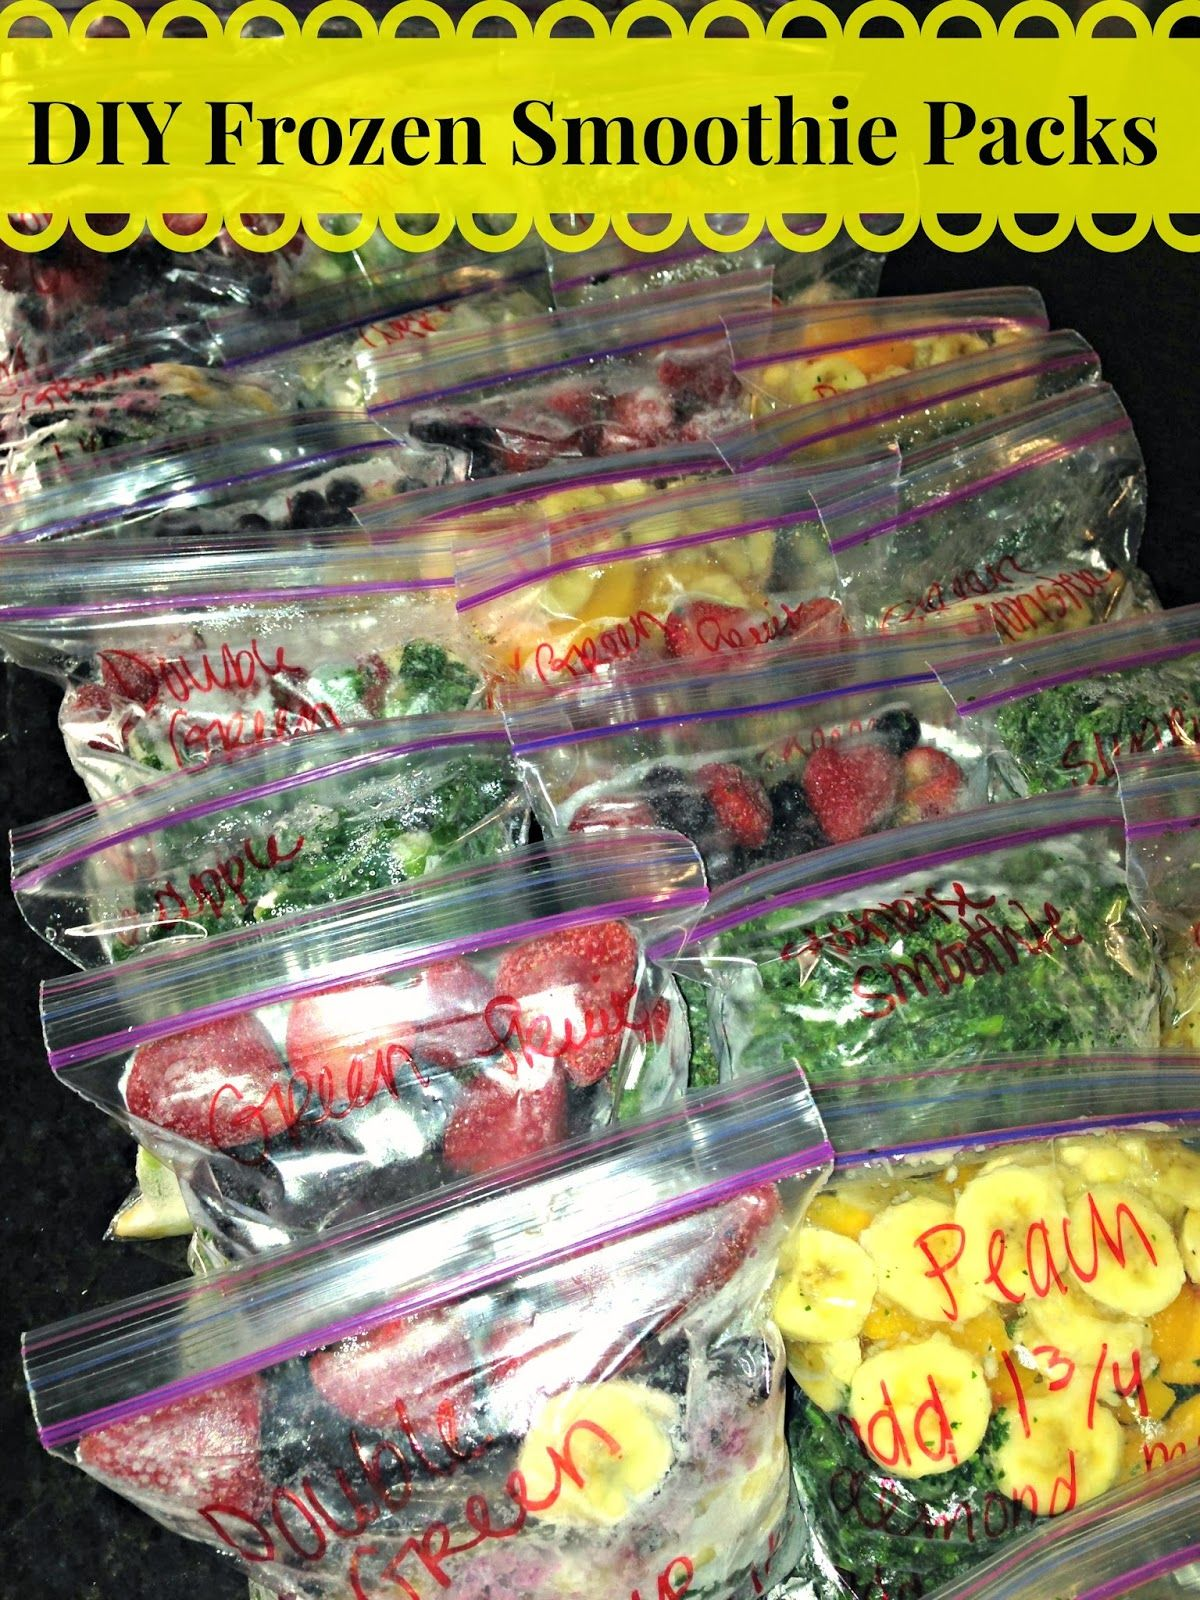 Frozen Smoothie Packs Smoothie Packs Smoothies Gesund Gesundheitsprodukte